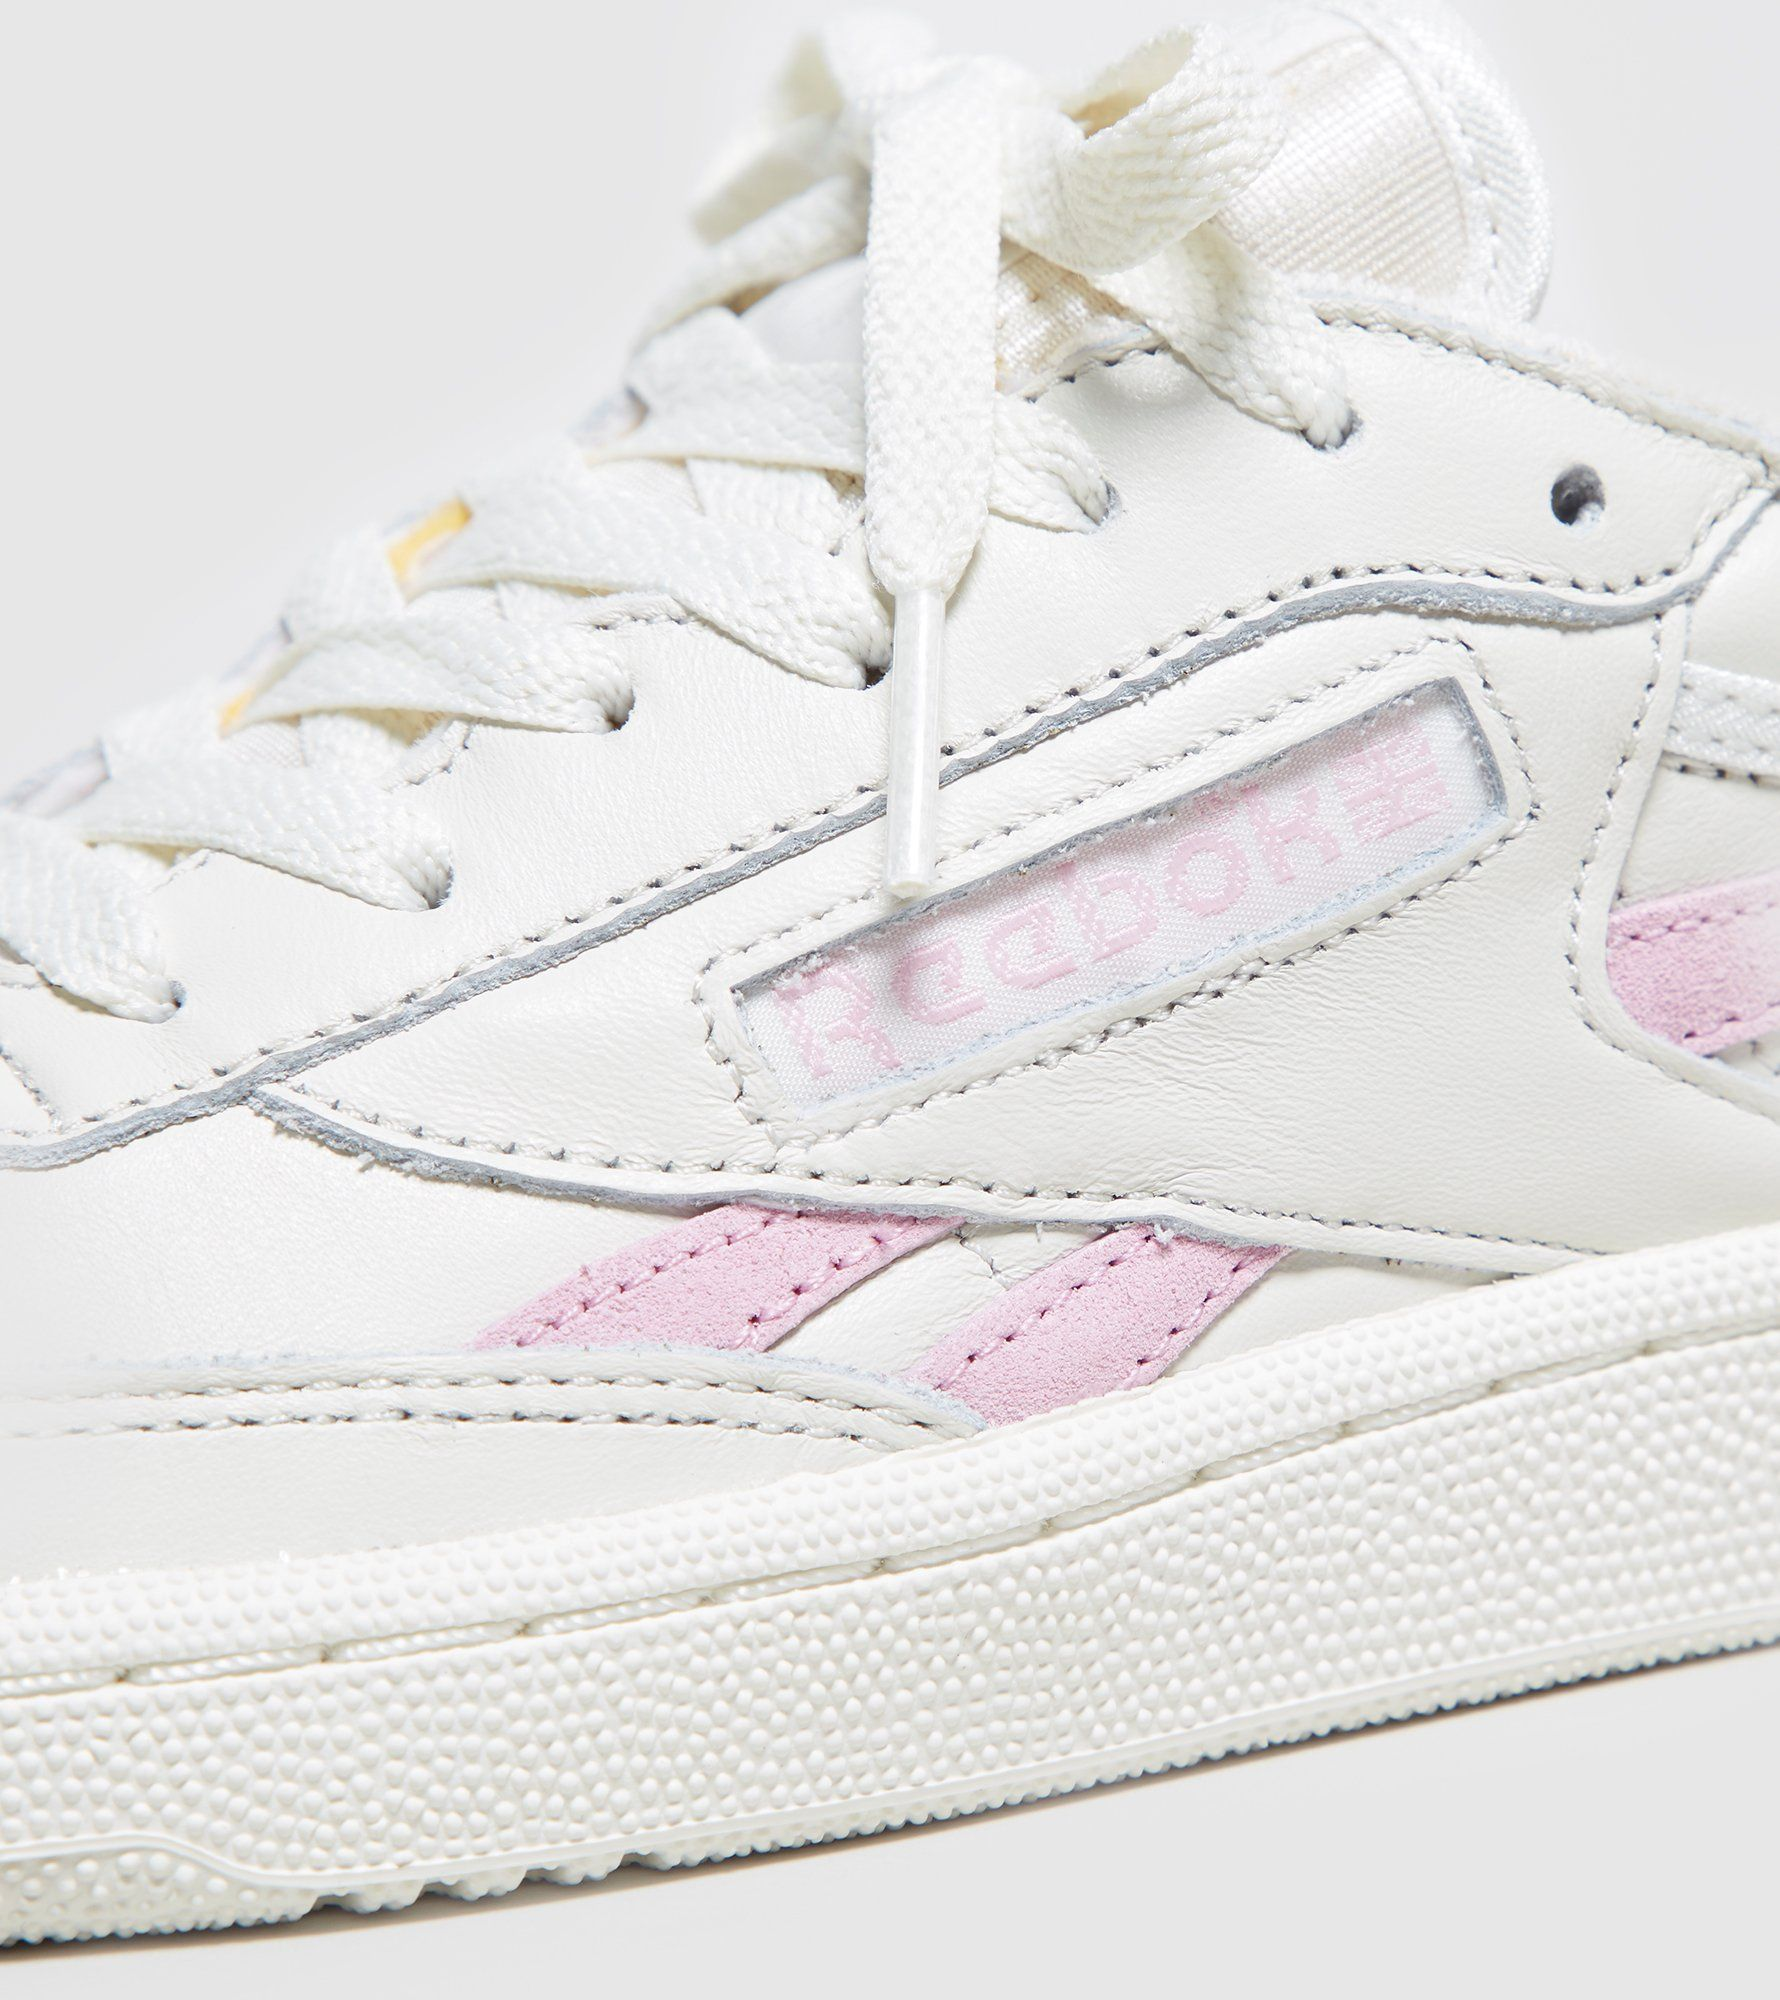 Reebok Revenge - size? Exclusive Women's